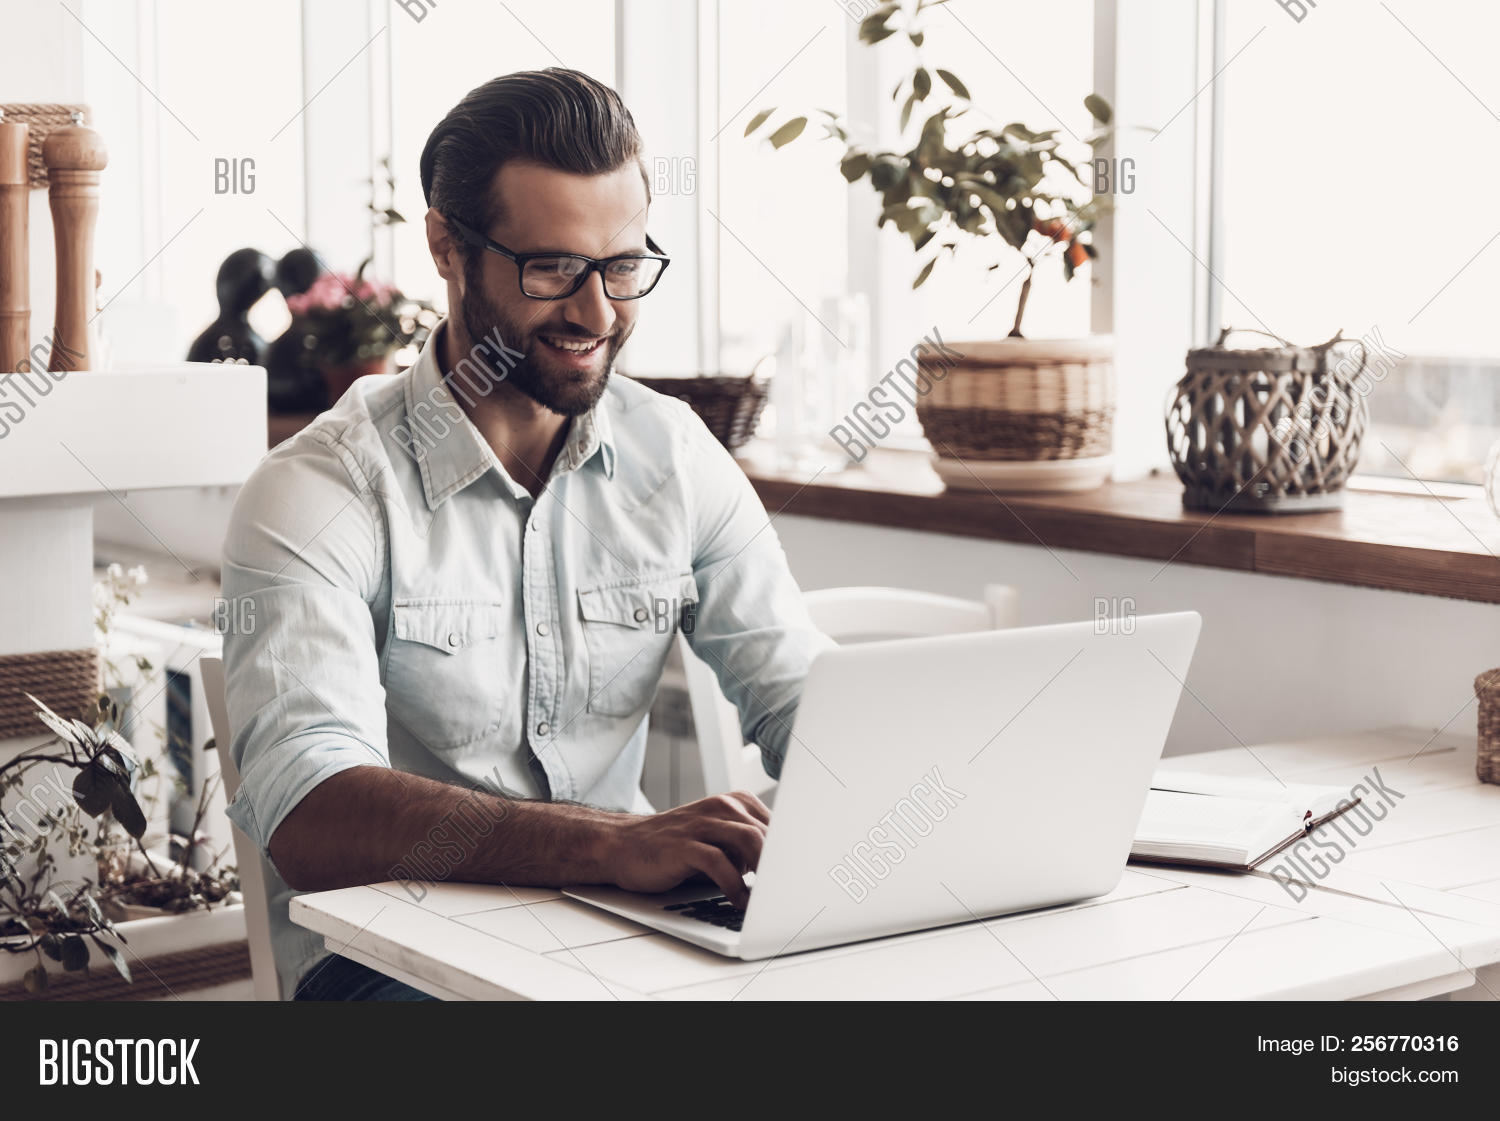 browsing,business,businessman,cafe,casual,caucasian,coffee,communication,computer,concept,confident,creative,device,distance,employee,freelance,freelancer,guy,handsome,happy,indoors,internet,job,laptop,male,man,modern,network,notebook,online,person,portrait,professional,remote,screen,shirt,sitting,smile,success,table,technology,typing,using,web,white,wifi,work,working,young